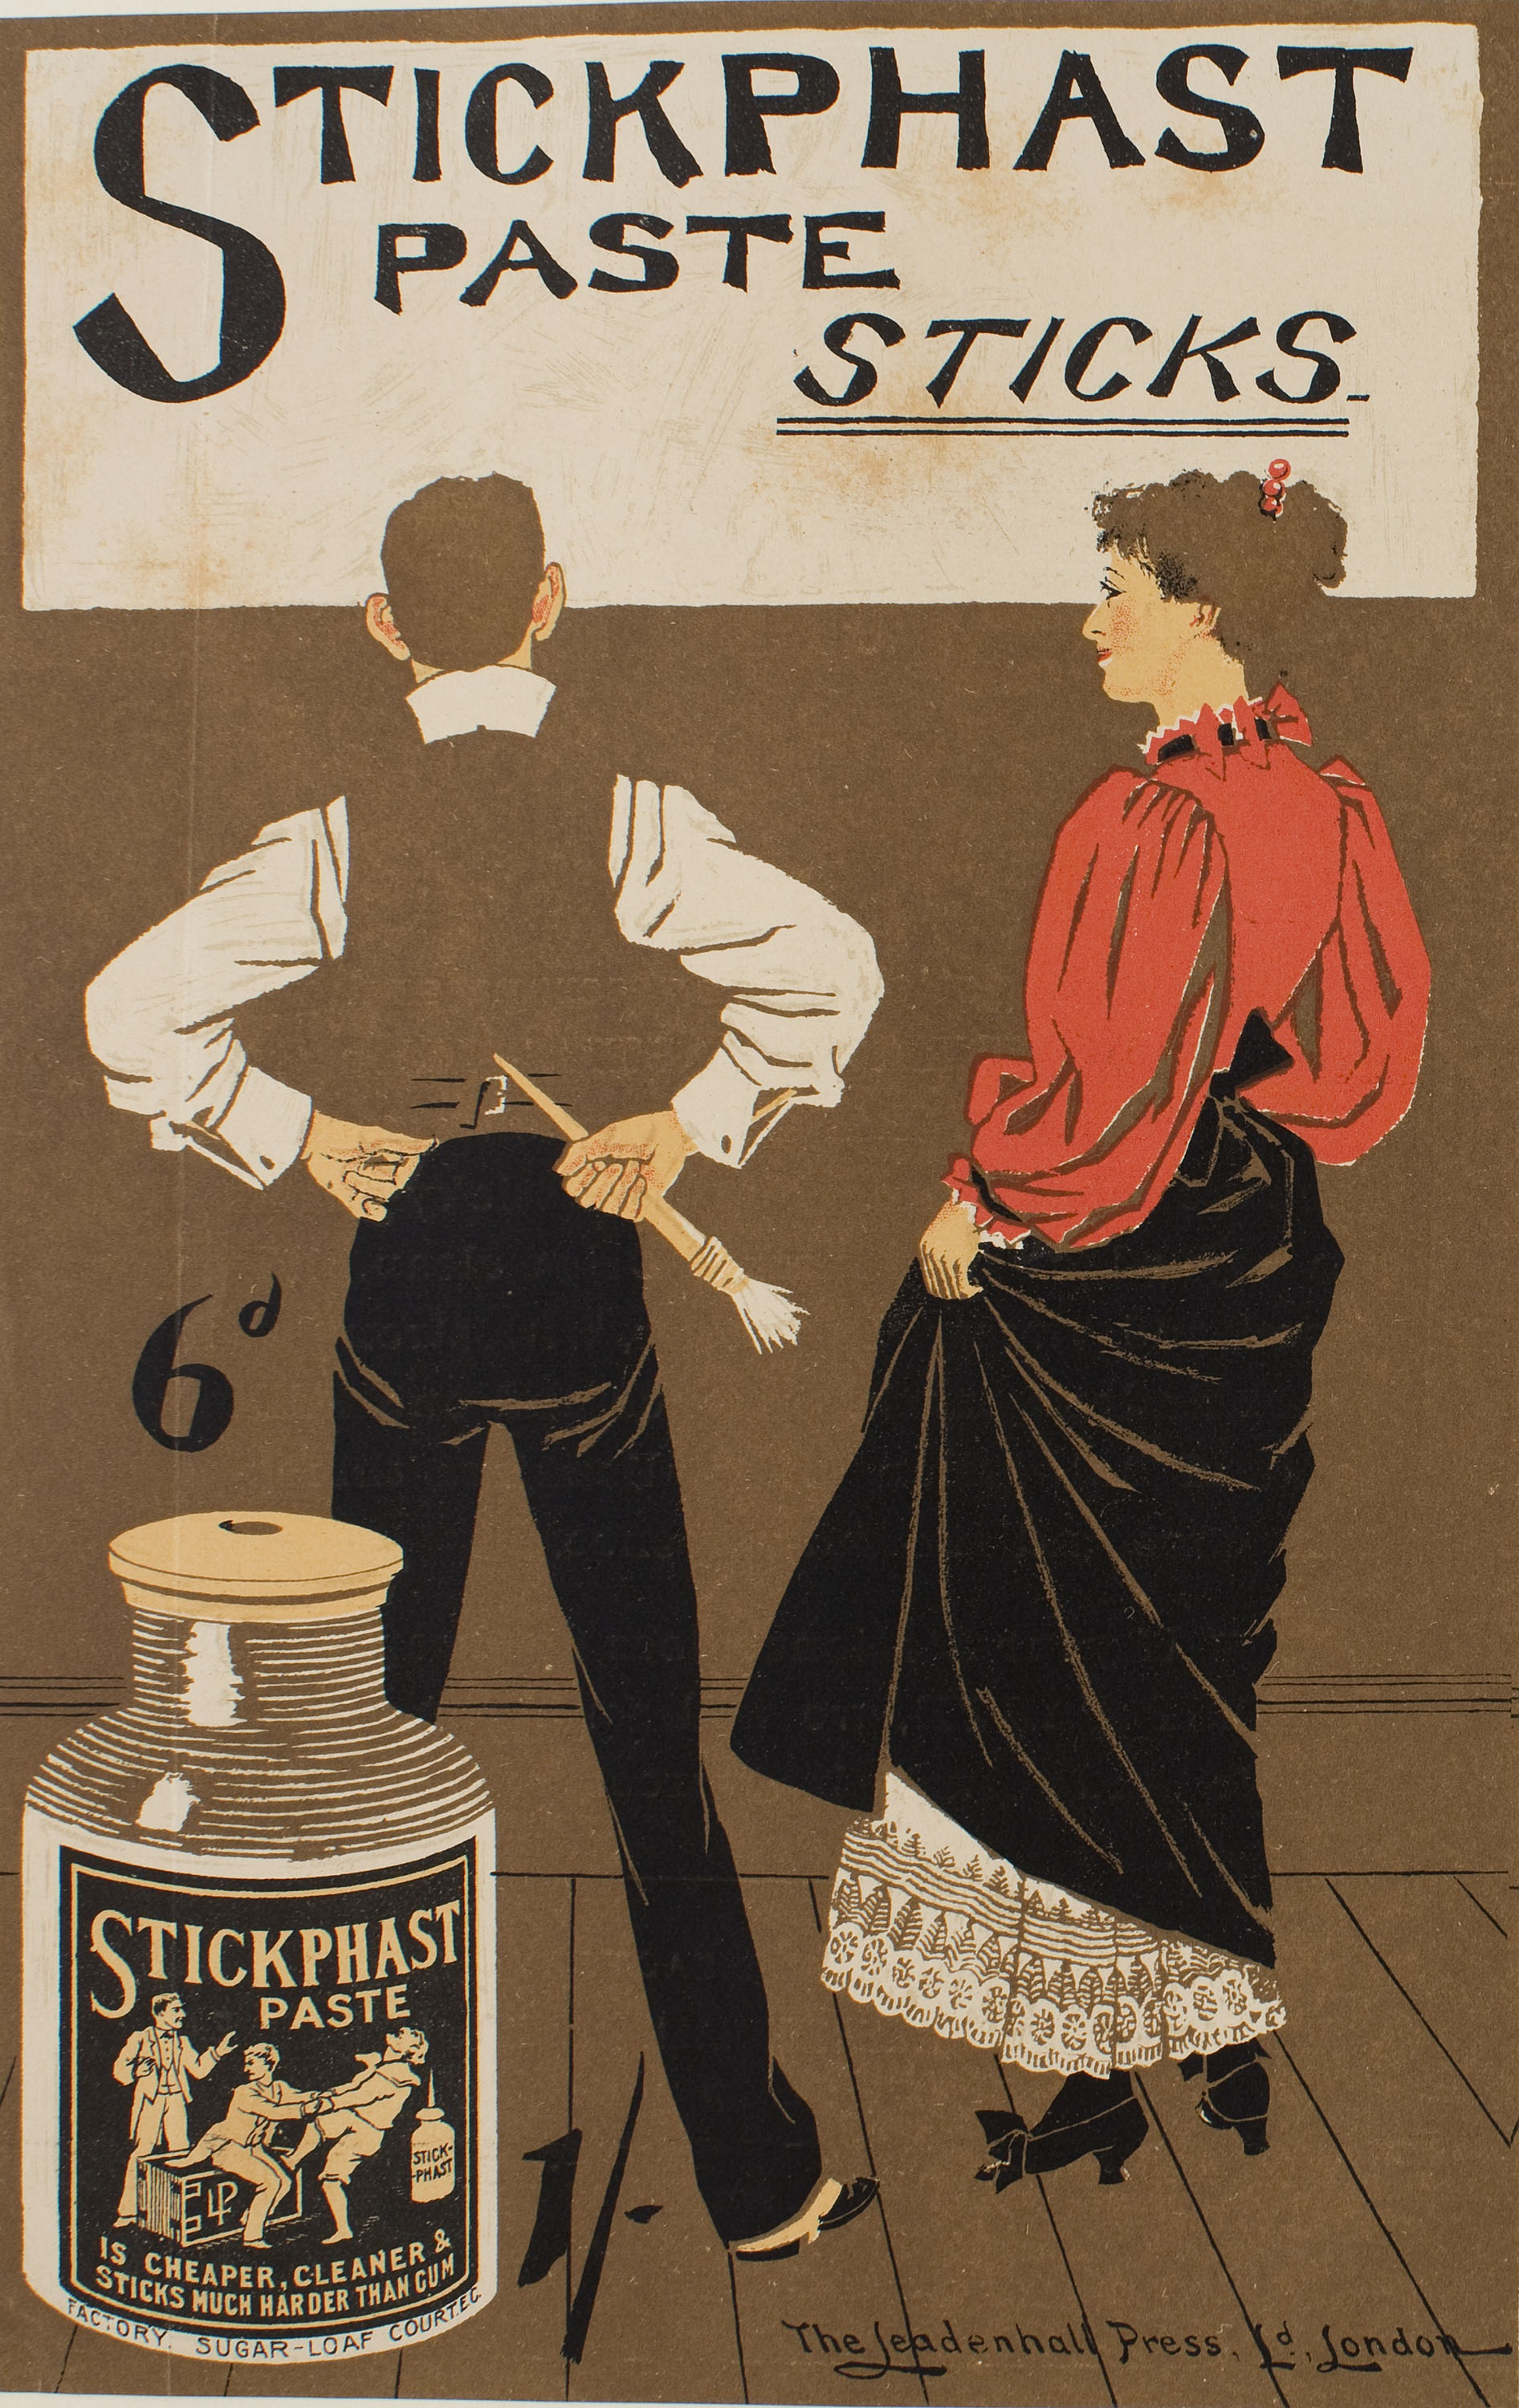 Philip William May - Stickphast paste - Cap a 1896